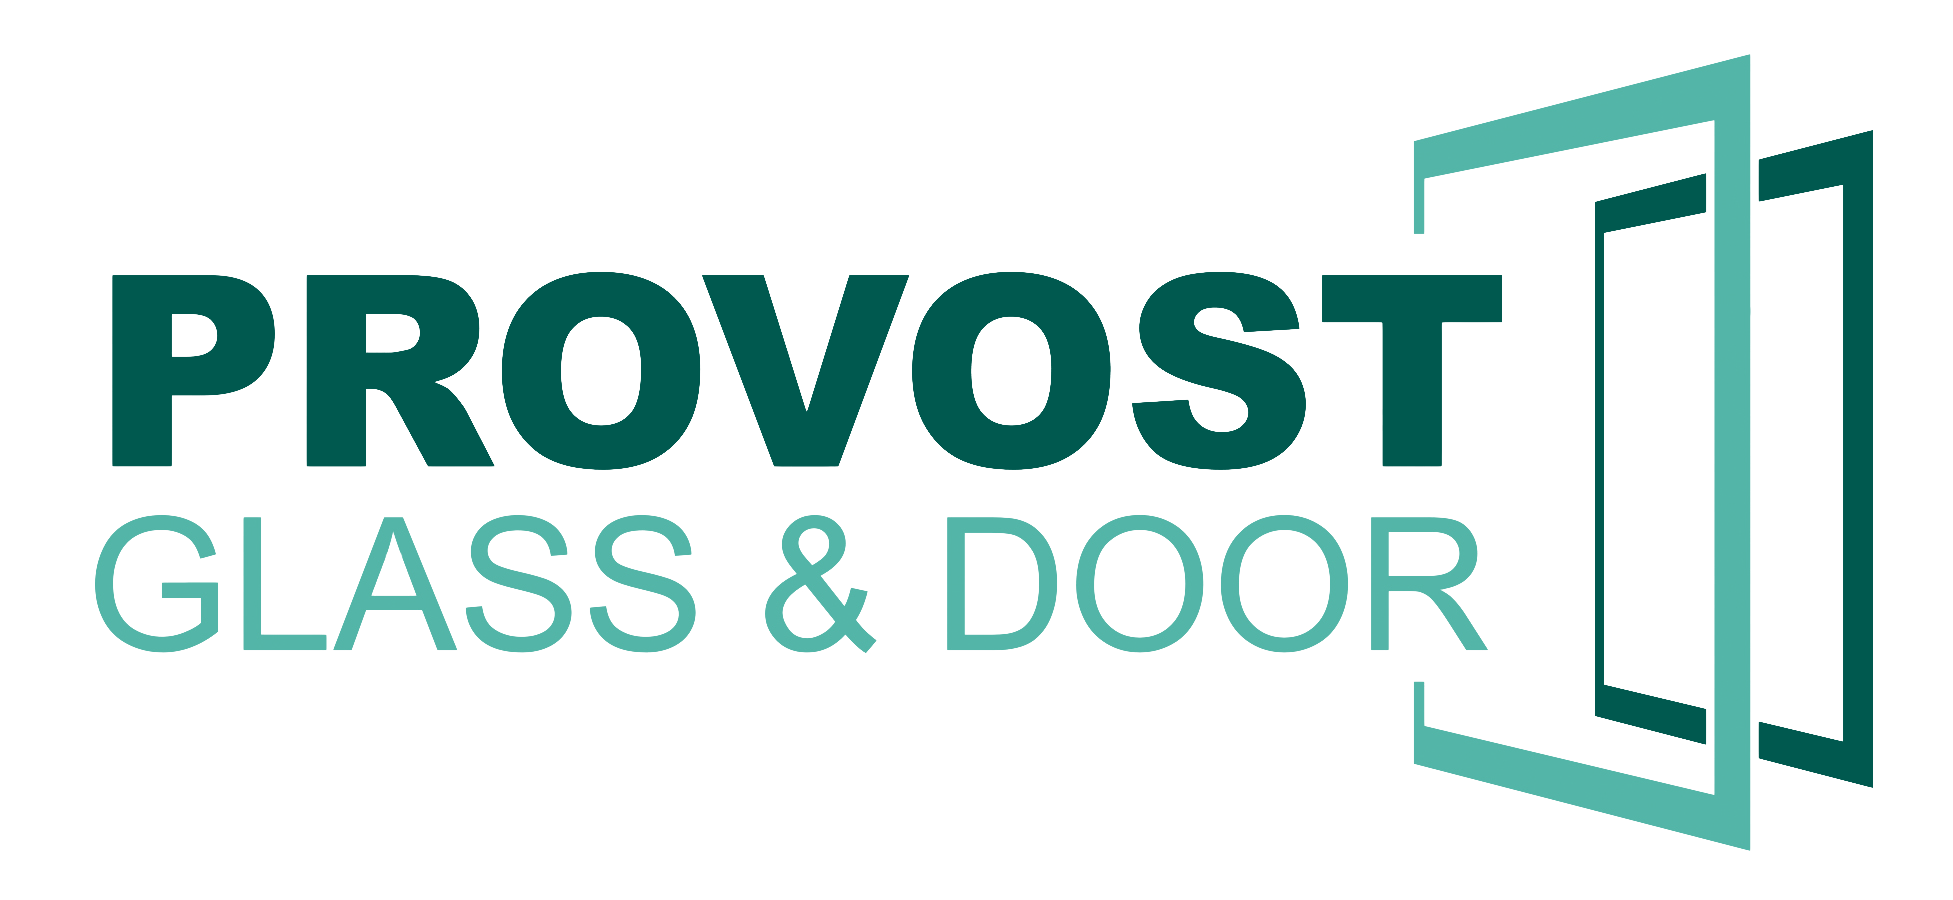 Provost Glass & Door